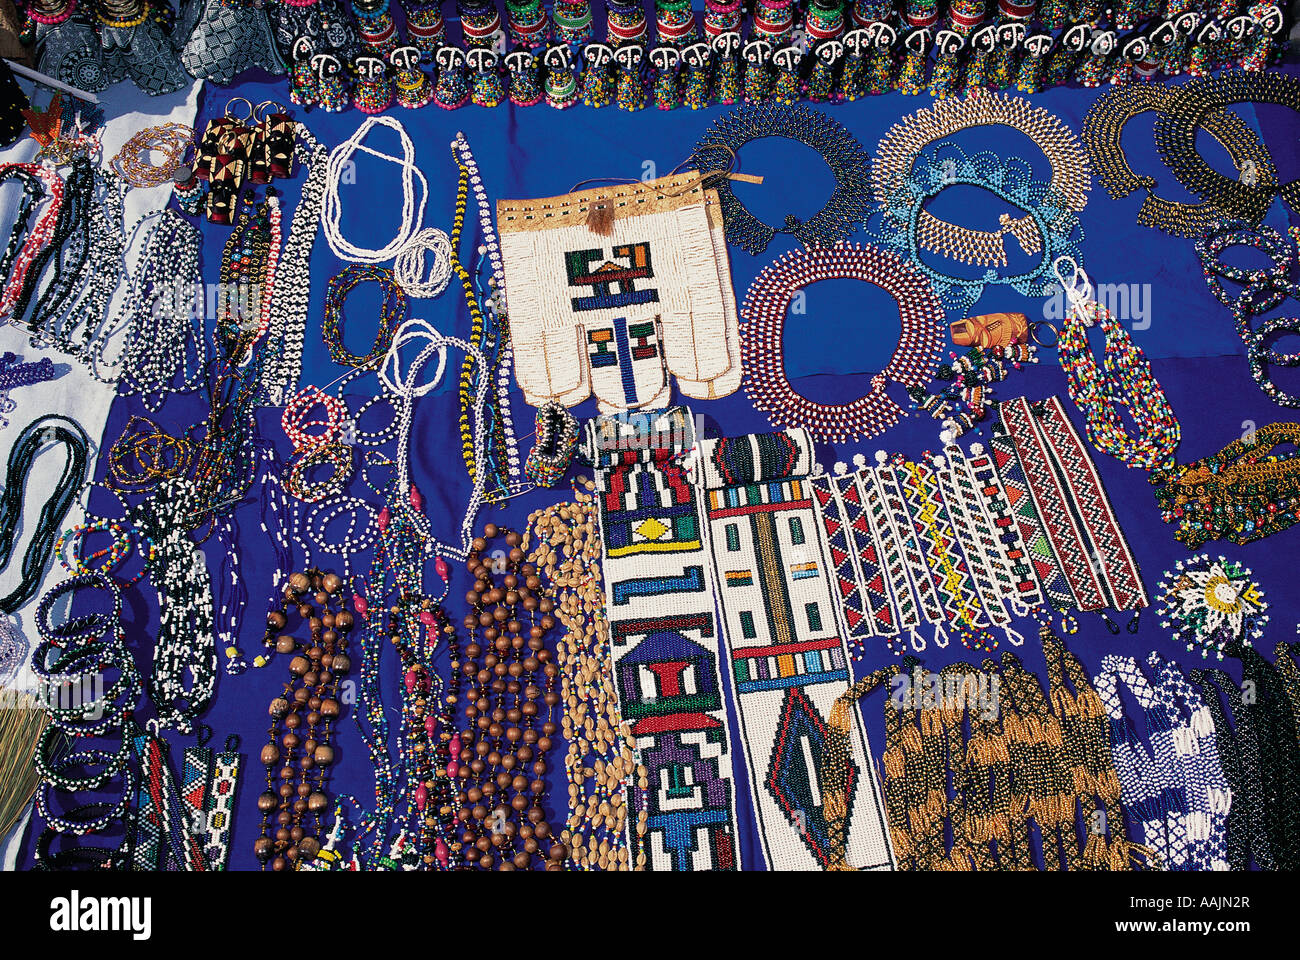 Display of necklaces bracelts and other cultural art work of Black people in Johannesburg Gauteng South Africa - Stock Image